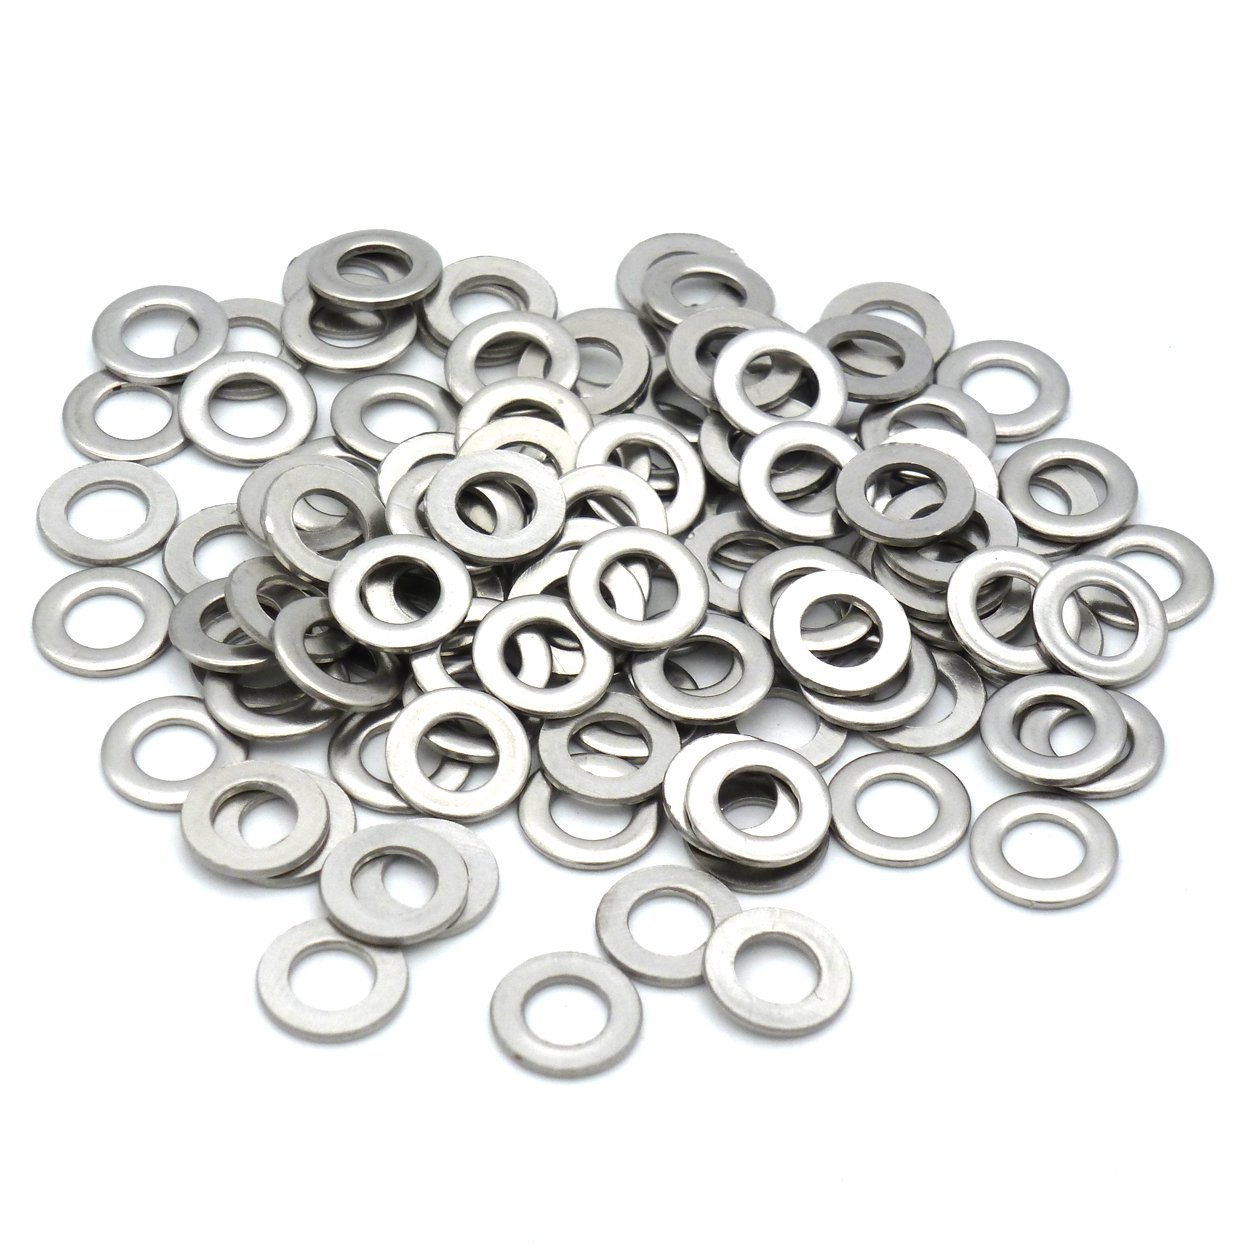 TOPINSTOCK M5 x 12mm Stainless Steel Flat Washer for M5 Screw Pack of 100